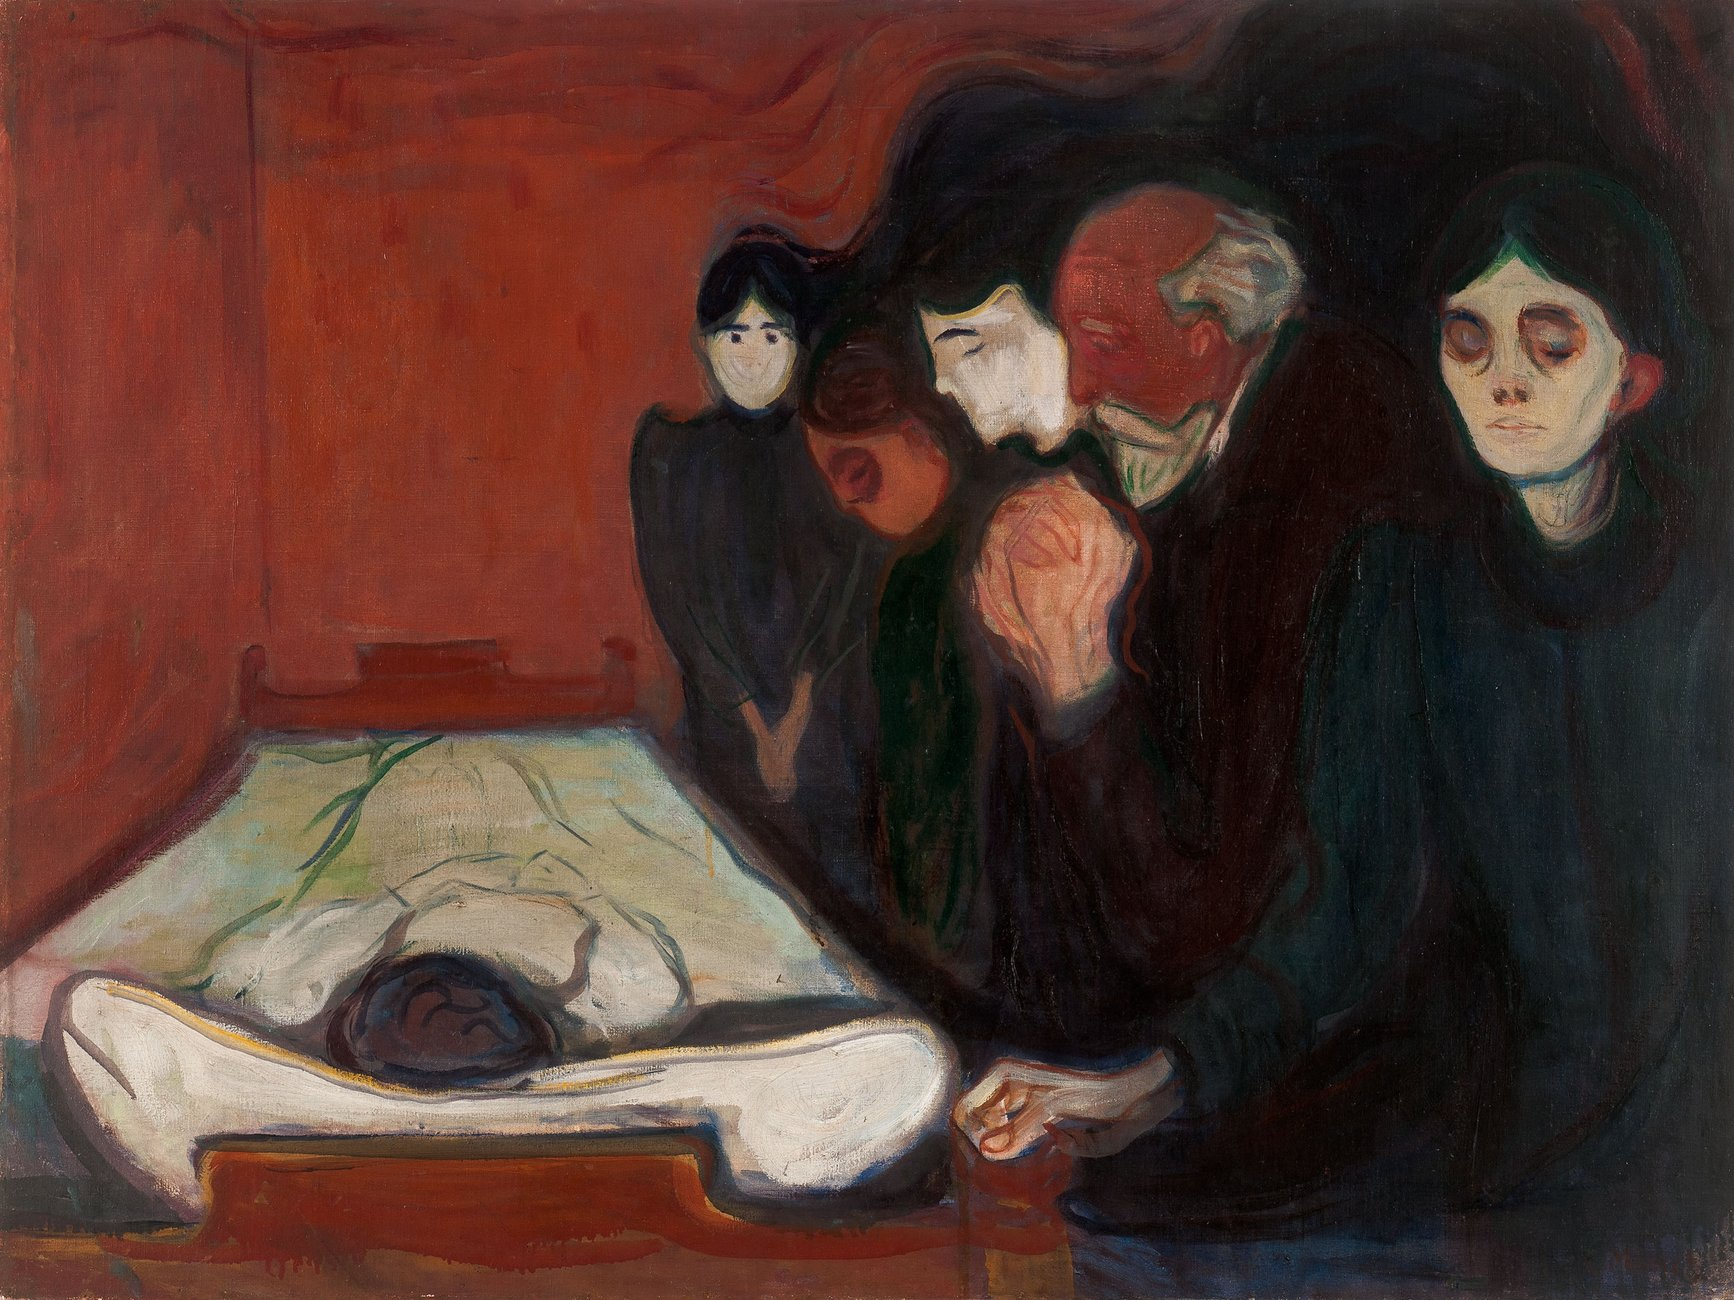 Artwork image, ​Edvard Munch, Ved dødssengen (At the Deathbed)